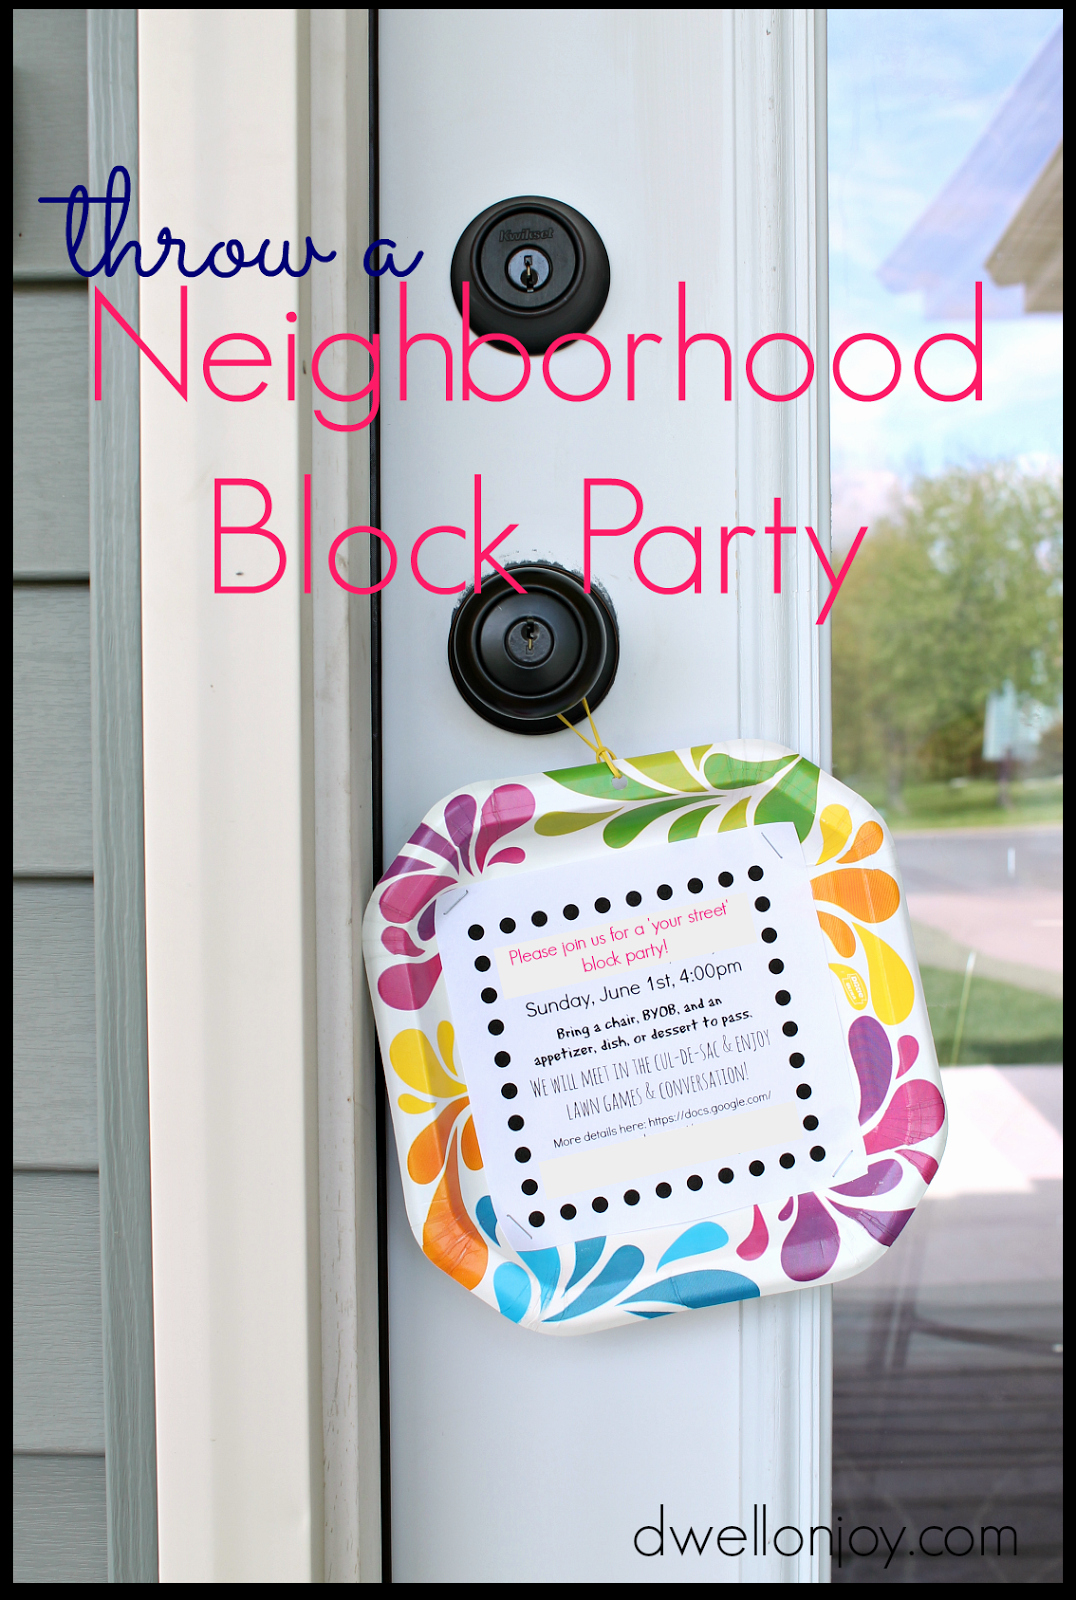 Block Party Invitation Template Luxury Neighborhood Block Party Invitation Templet